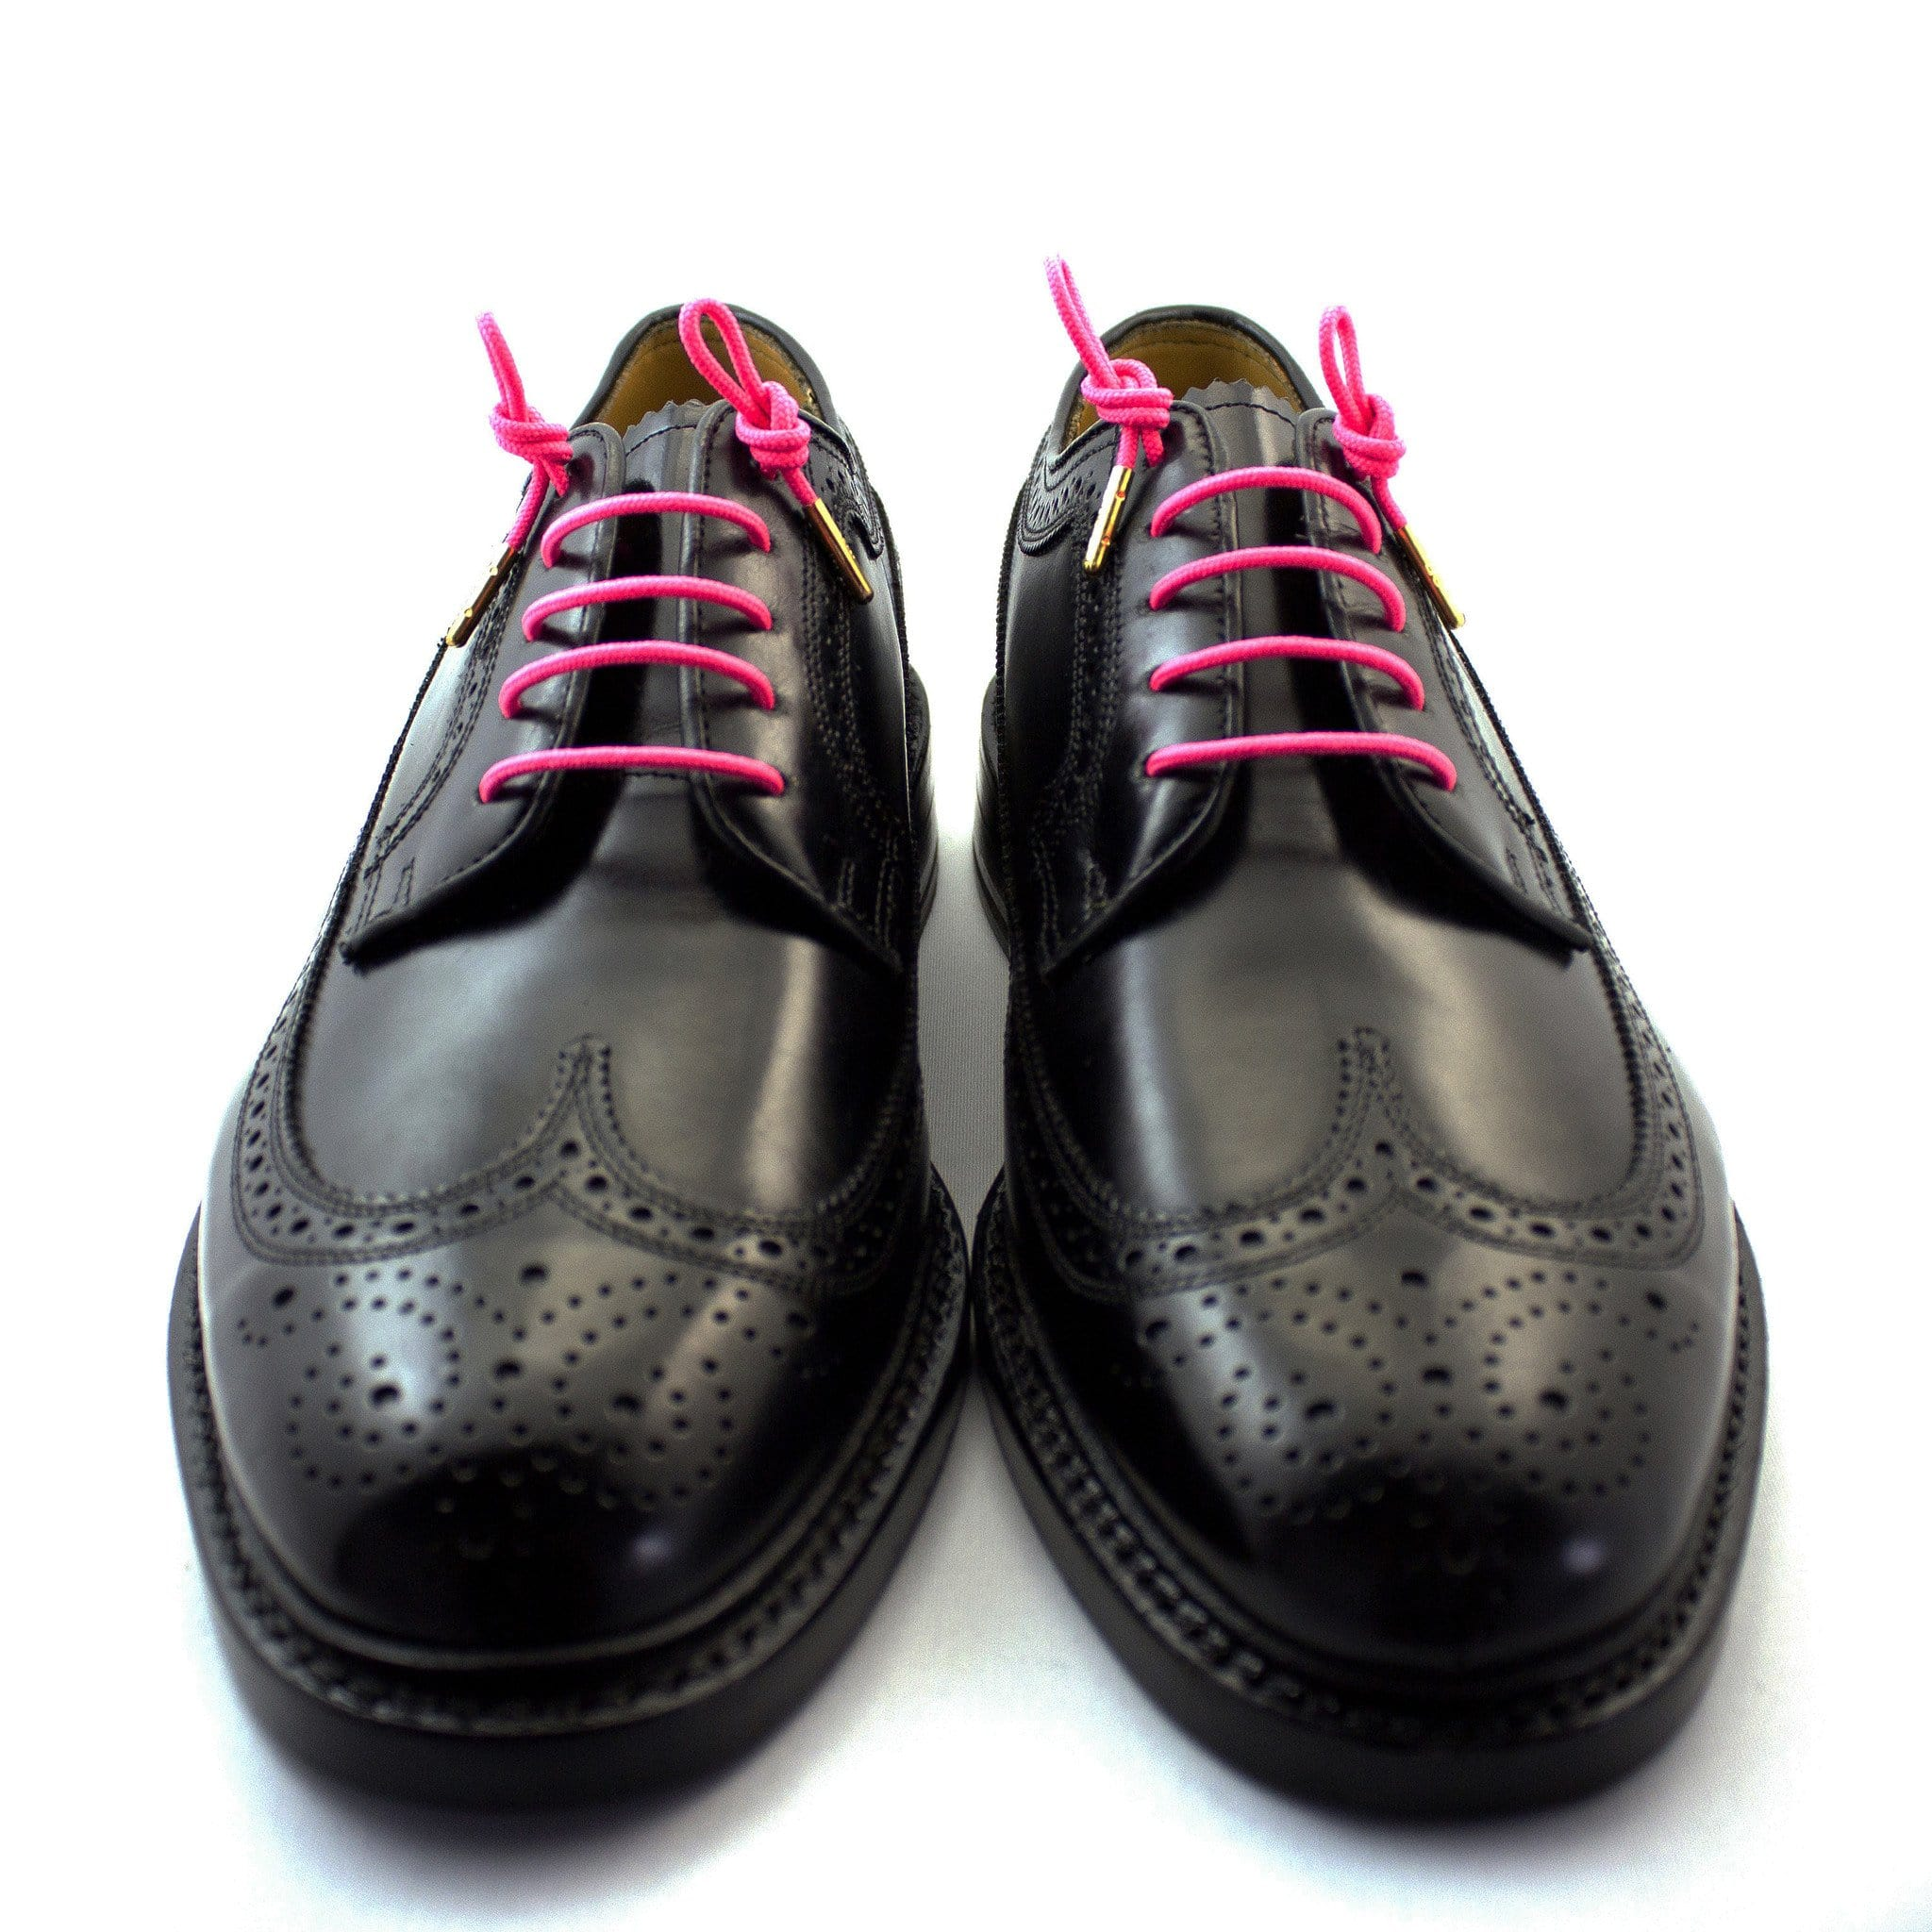 "Neon pink laces for dress shoes, Length: 32""/81cm-Stolen Riches"